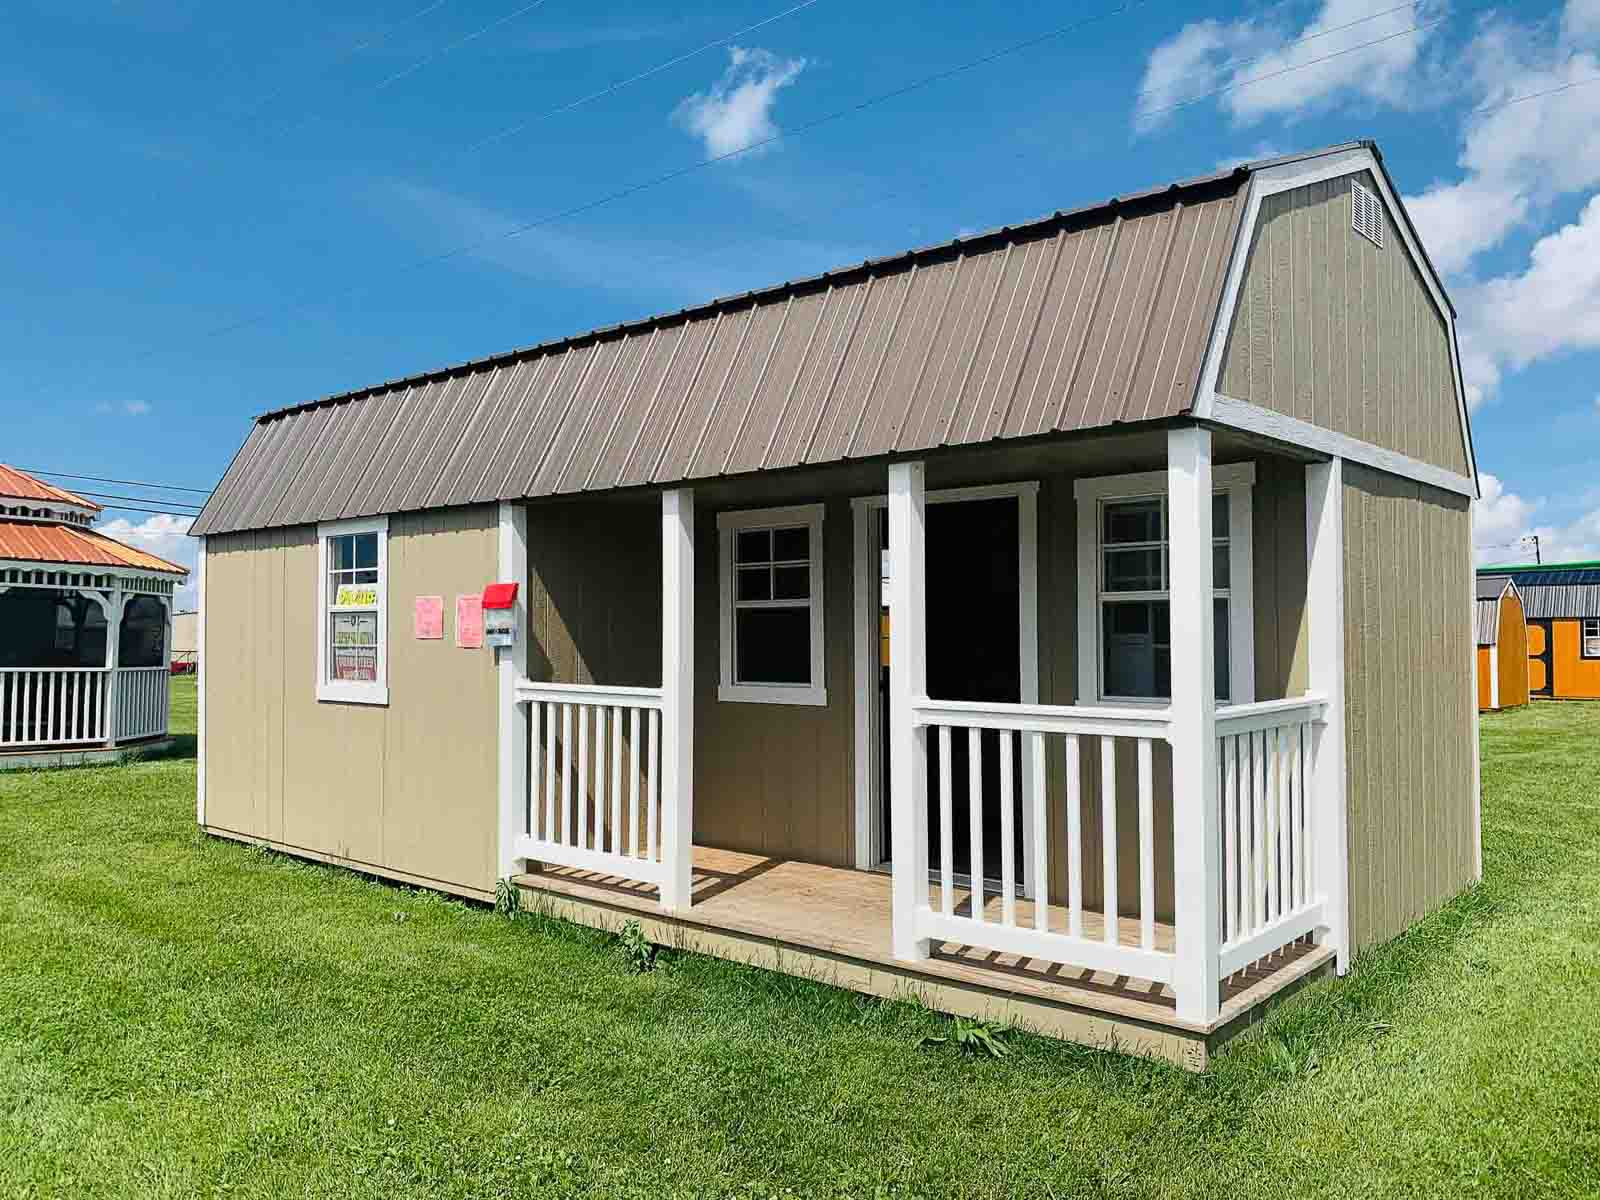 Amish Built Casita at the Adrian Location of Amish Outdoor Buildings